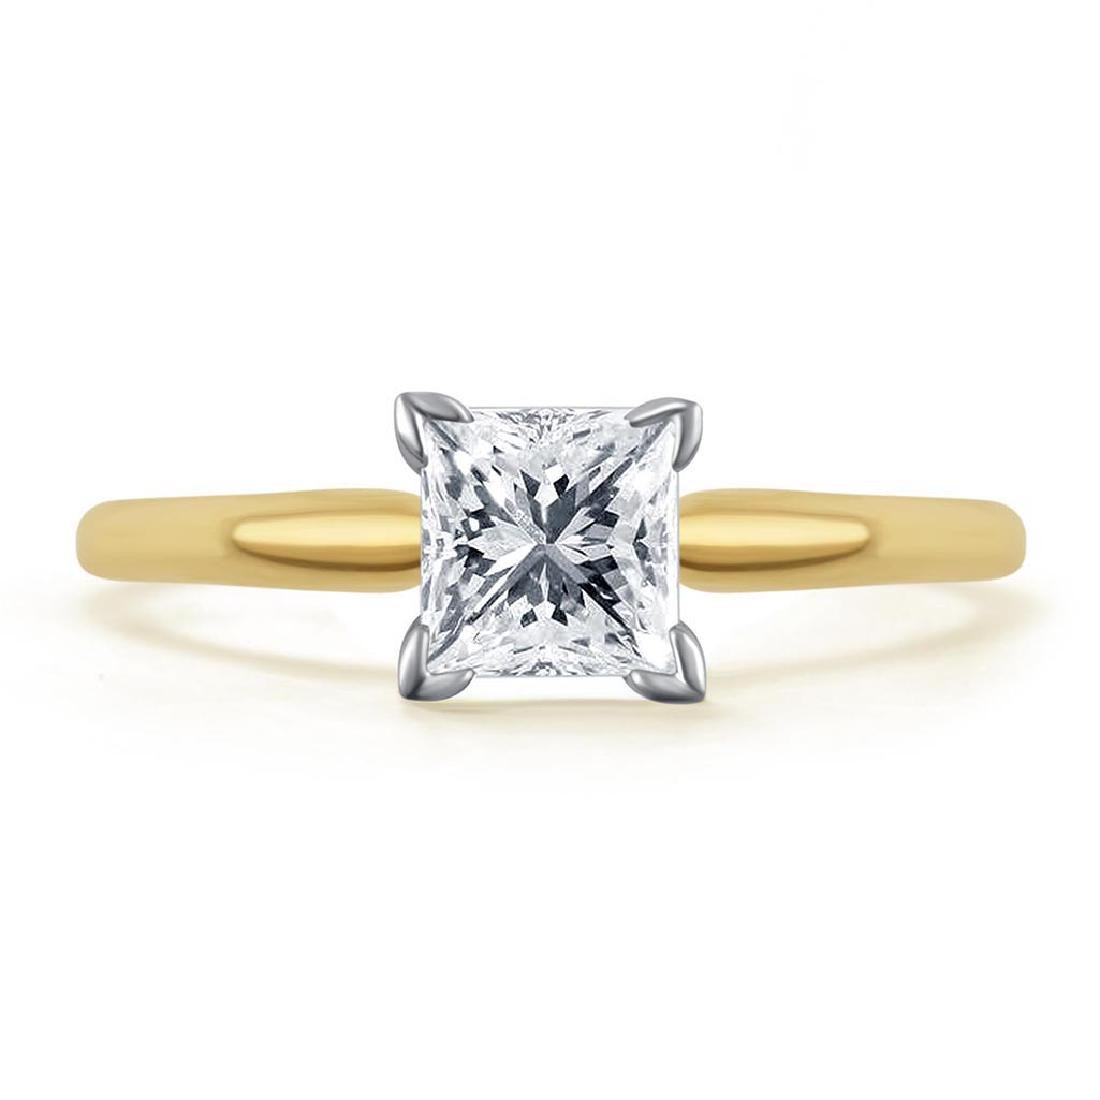 CERTIFIED 1.07 CTW PRINCESS E/SI2 SOLITAIRE RING IN 14K